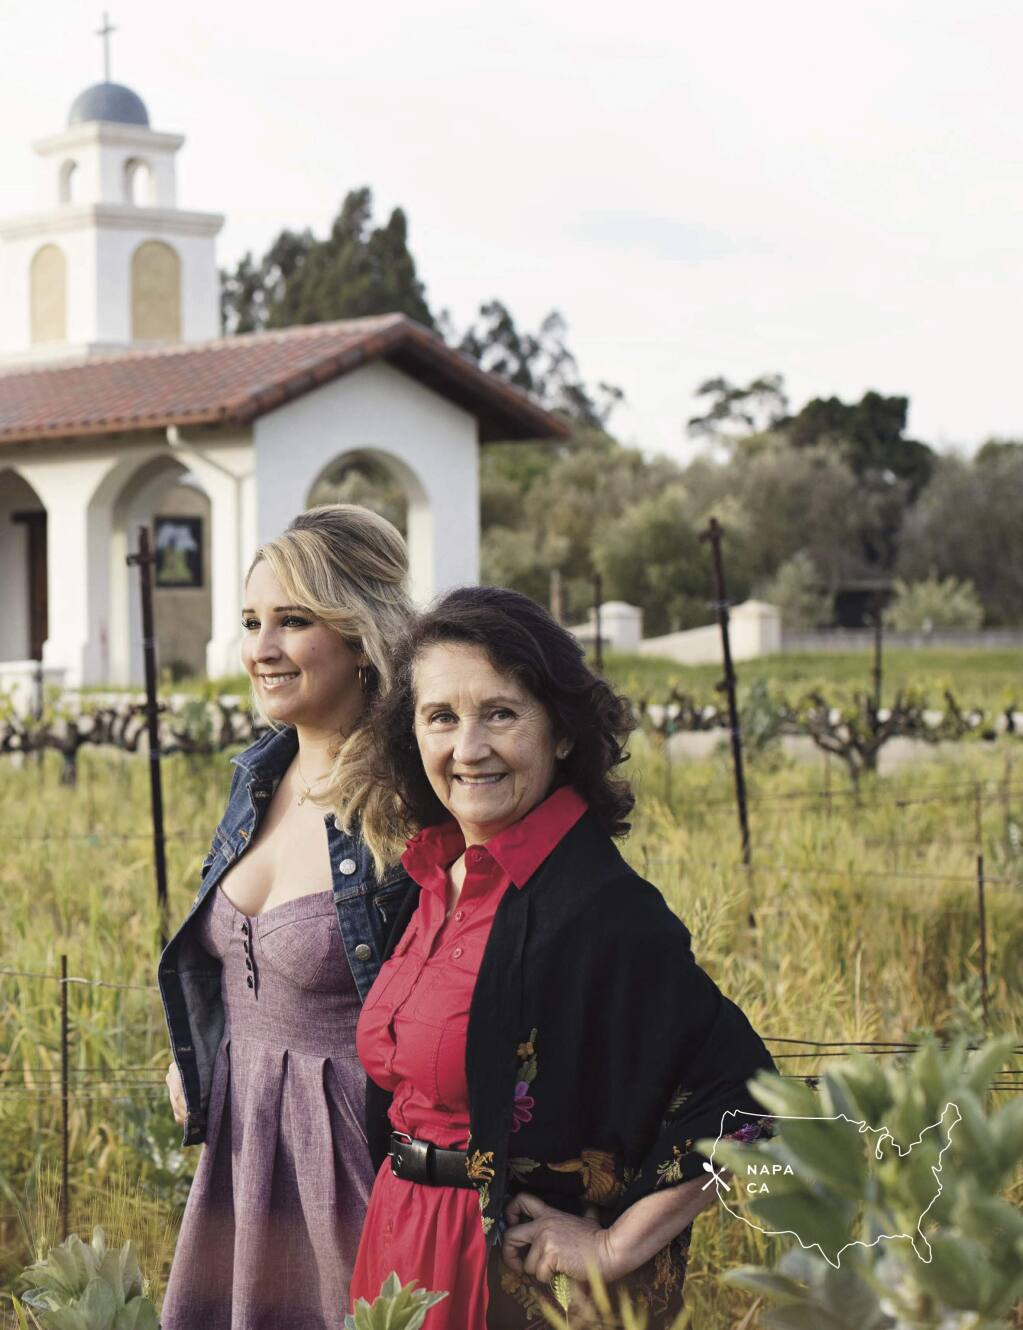 Dalia and Amelia Ceja from Ceja Vineyards in Napa and Sonoma.